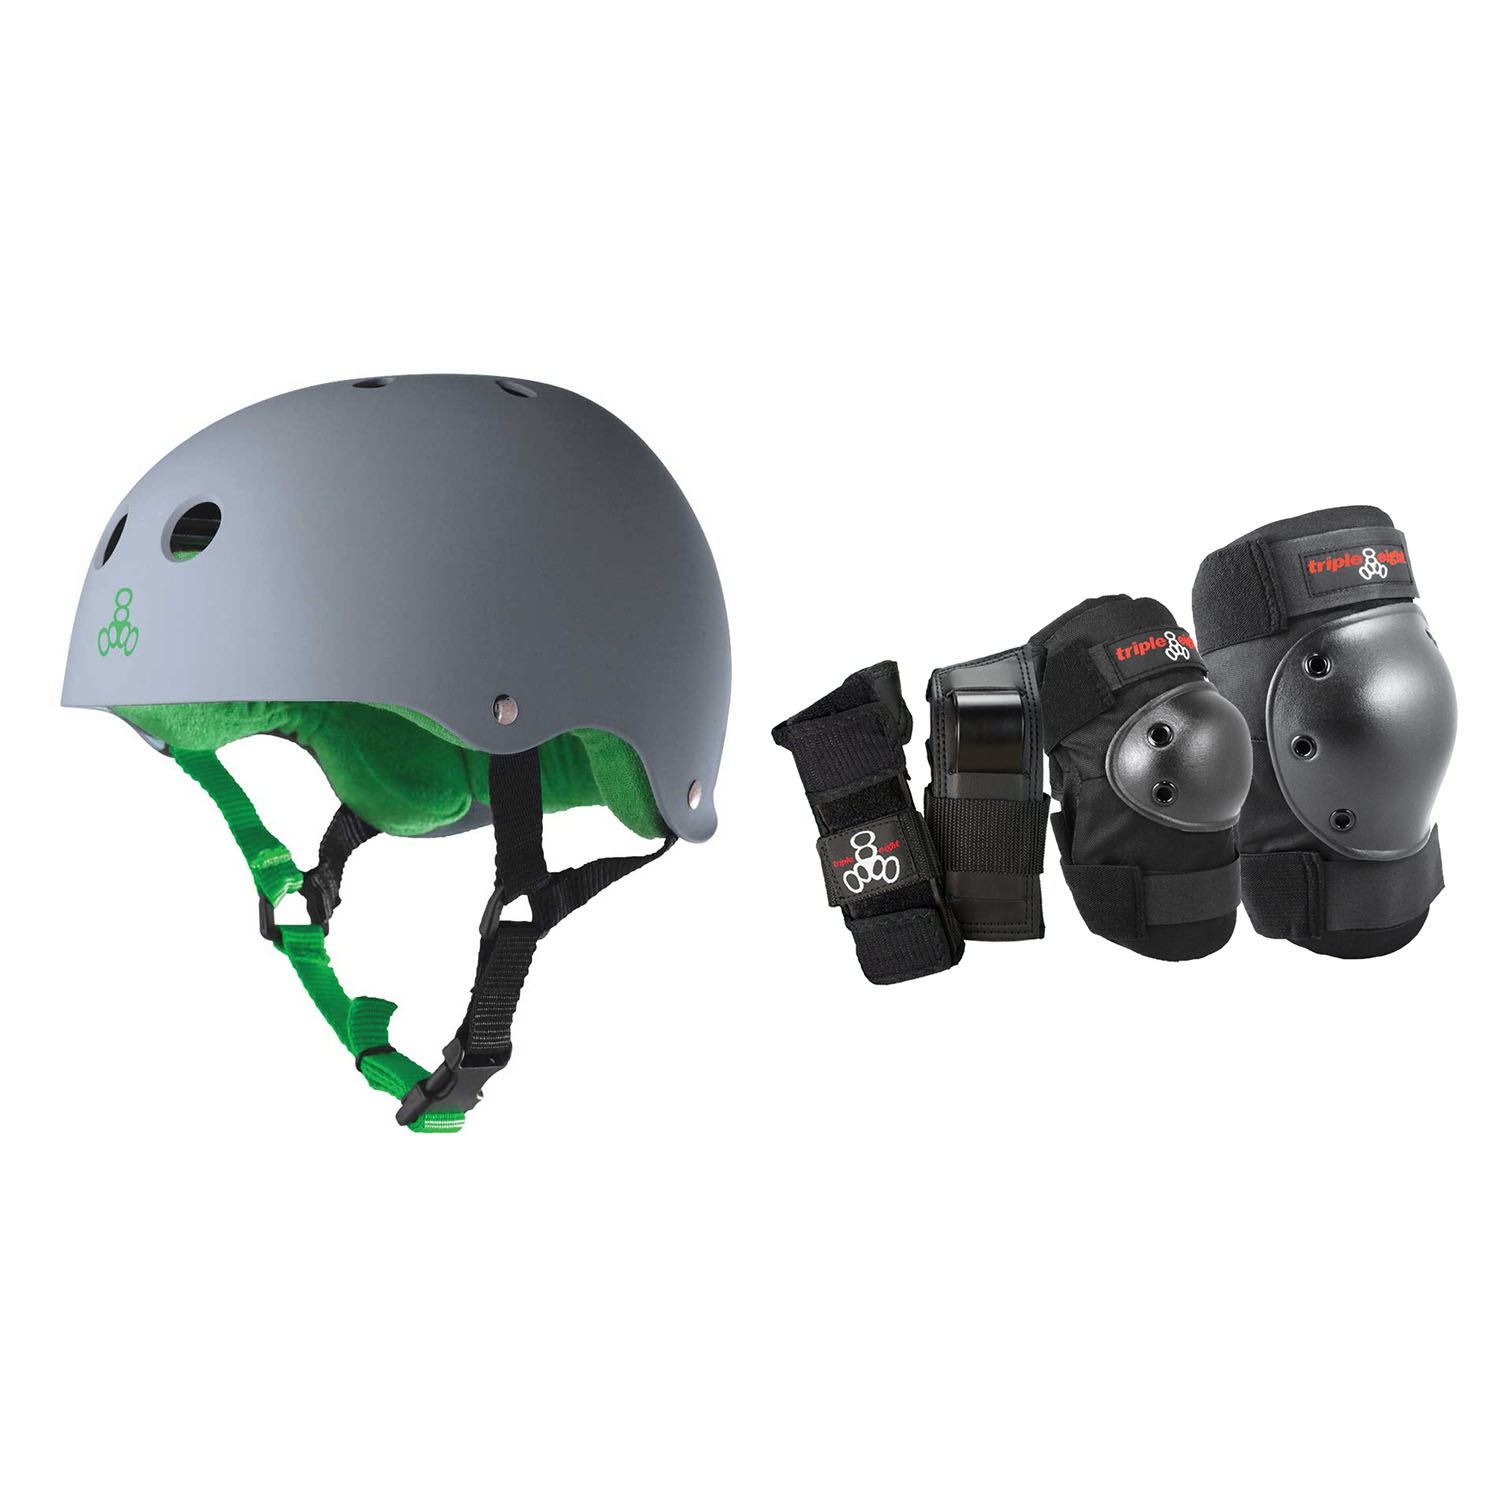 Triple 8 Hardened Skate Helmet with Sweatsaver, Carbon Large + Protective Pads by Triple 8